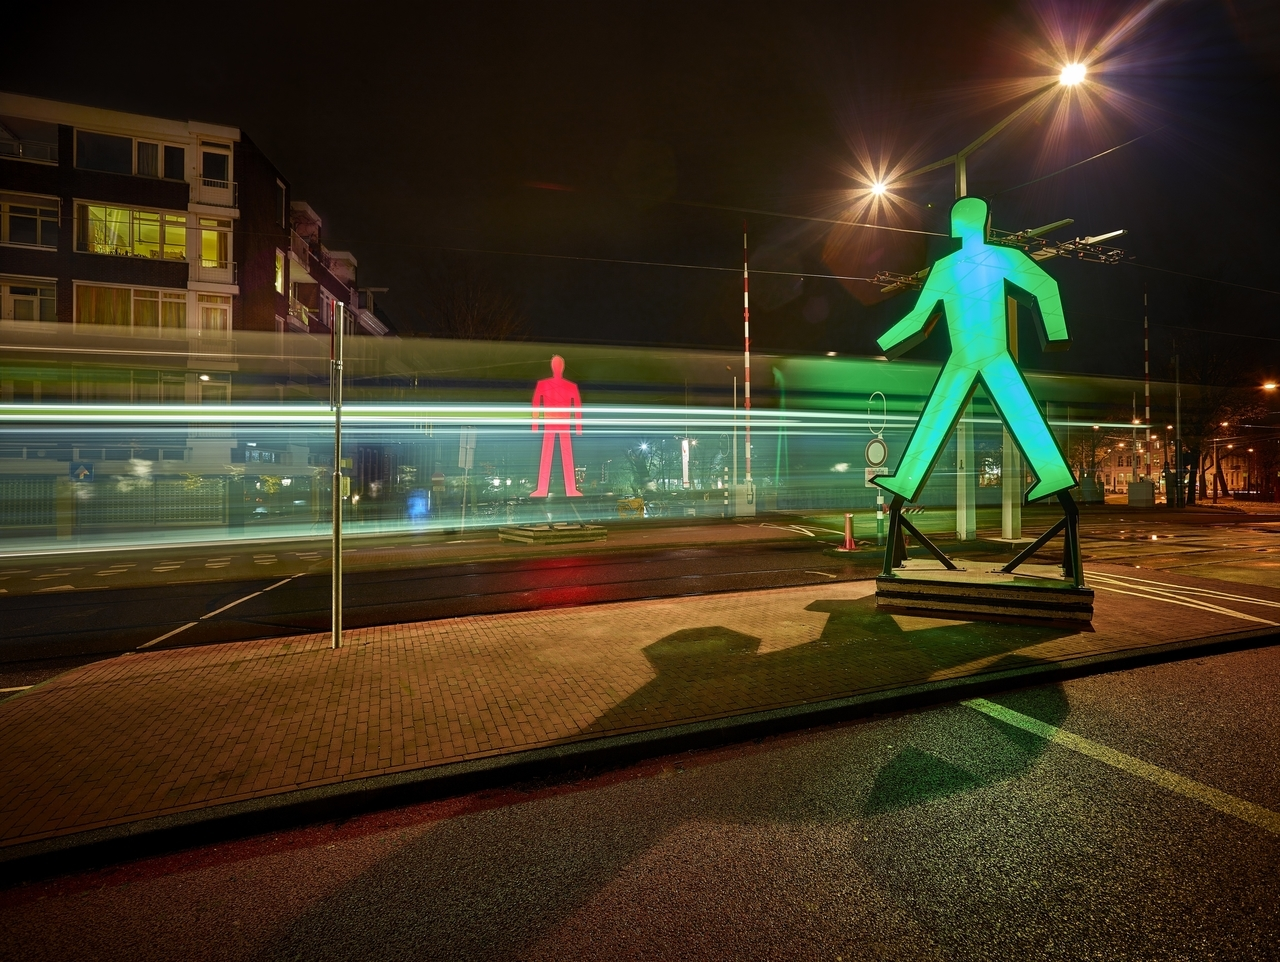 Strangers in the Light sculptures by Victor Engbers & Ina Smits represent pedestrian crossing lights